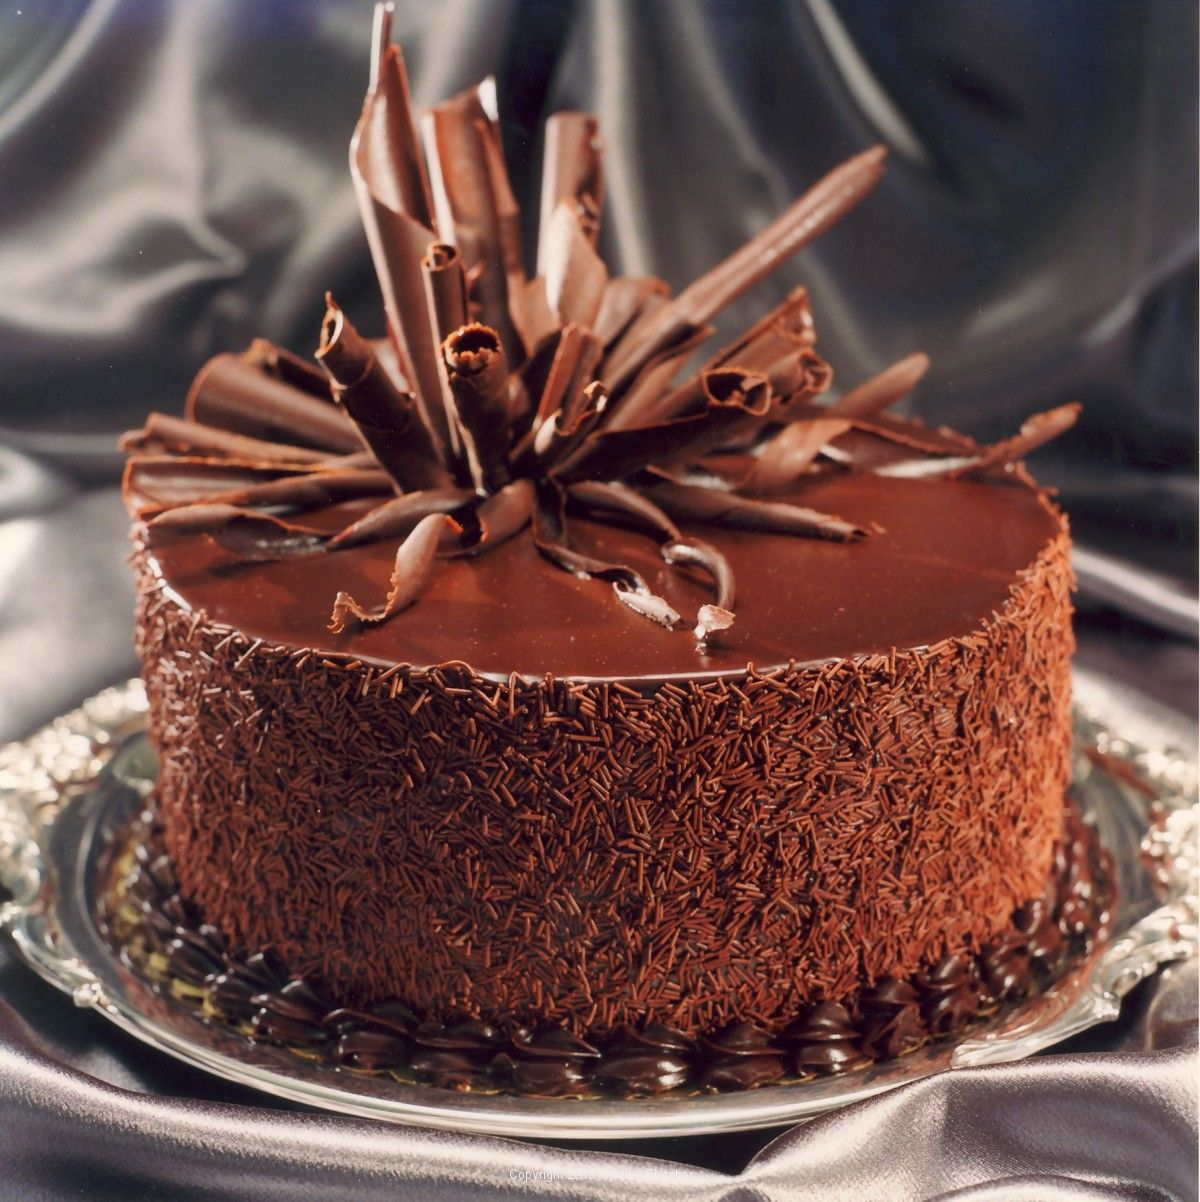 Dark Chocolate Cake Decorated With Chocolate Curls